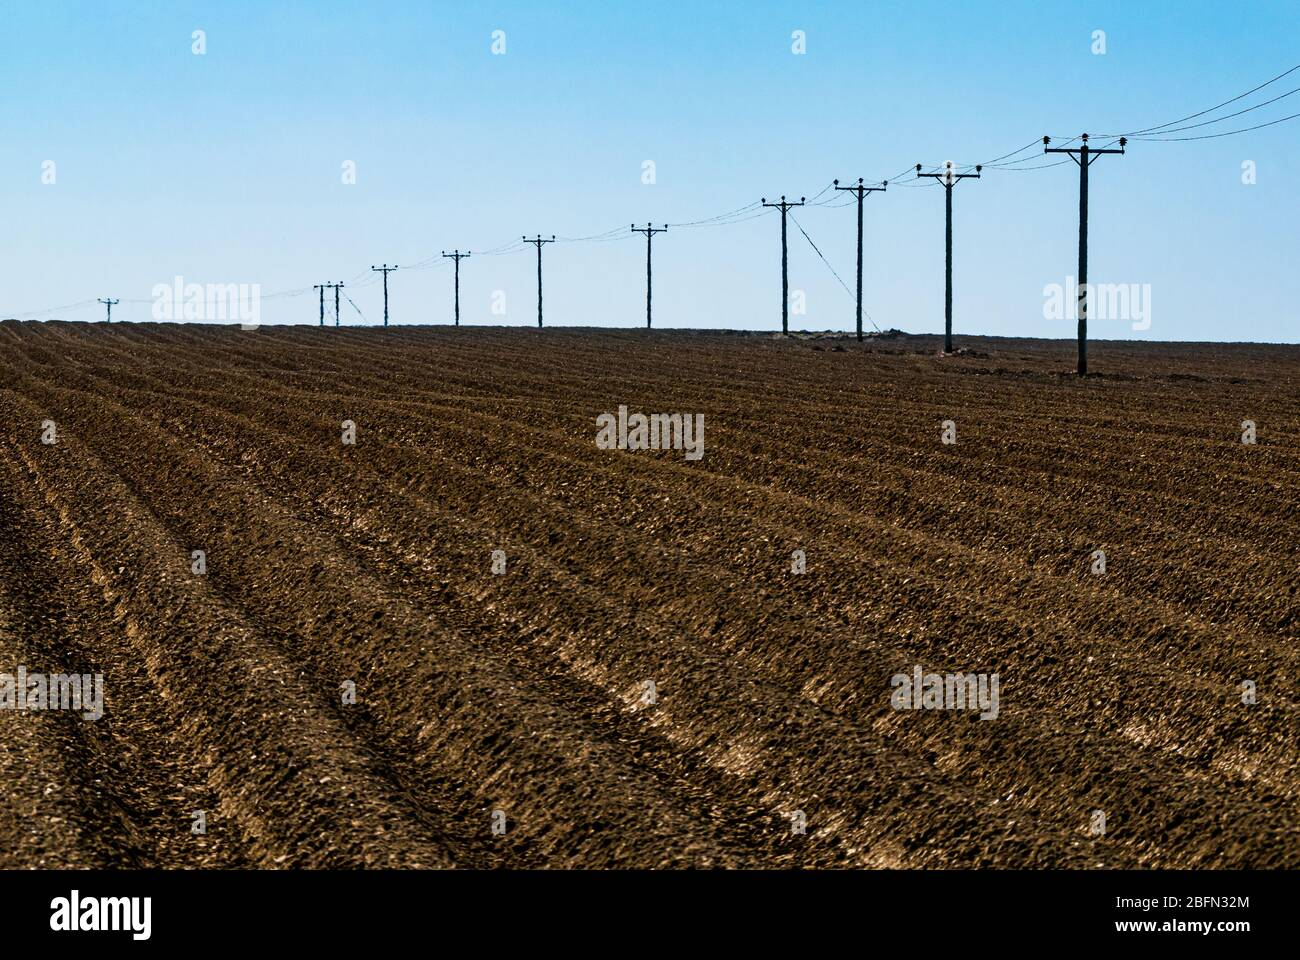 atmospheric-view-of-ploughed-field-with-